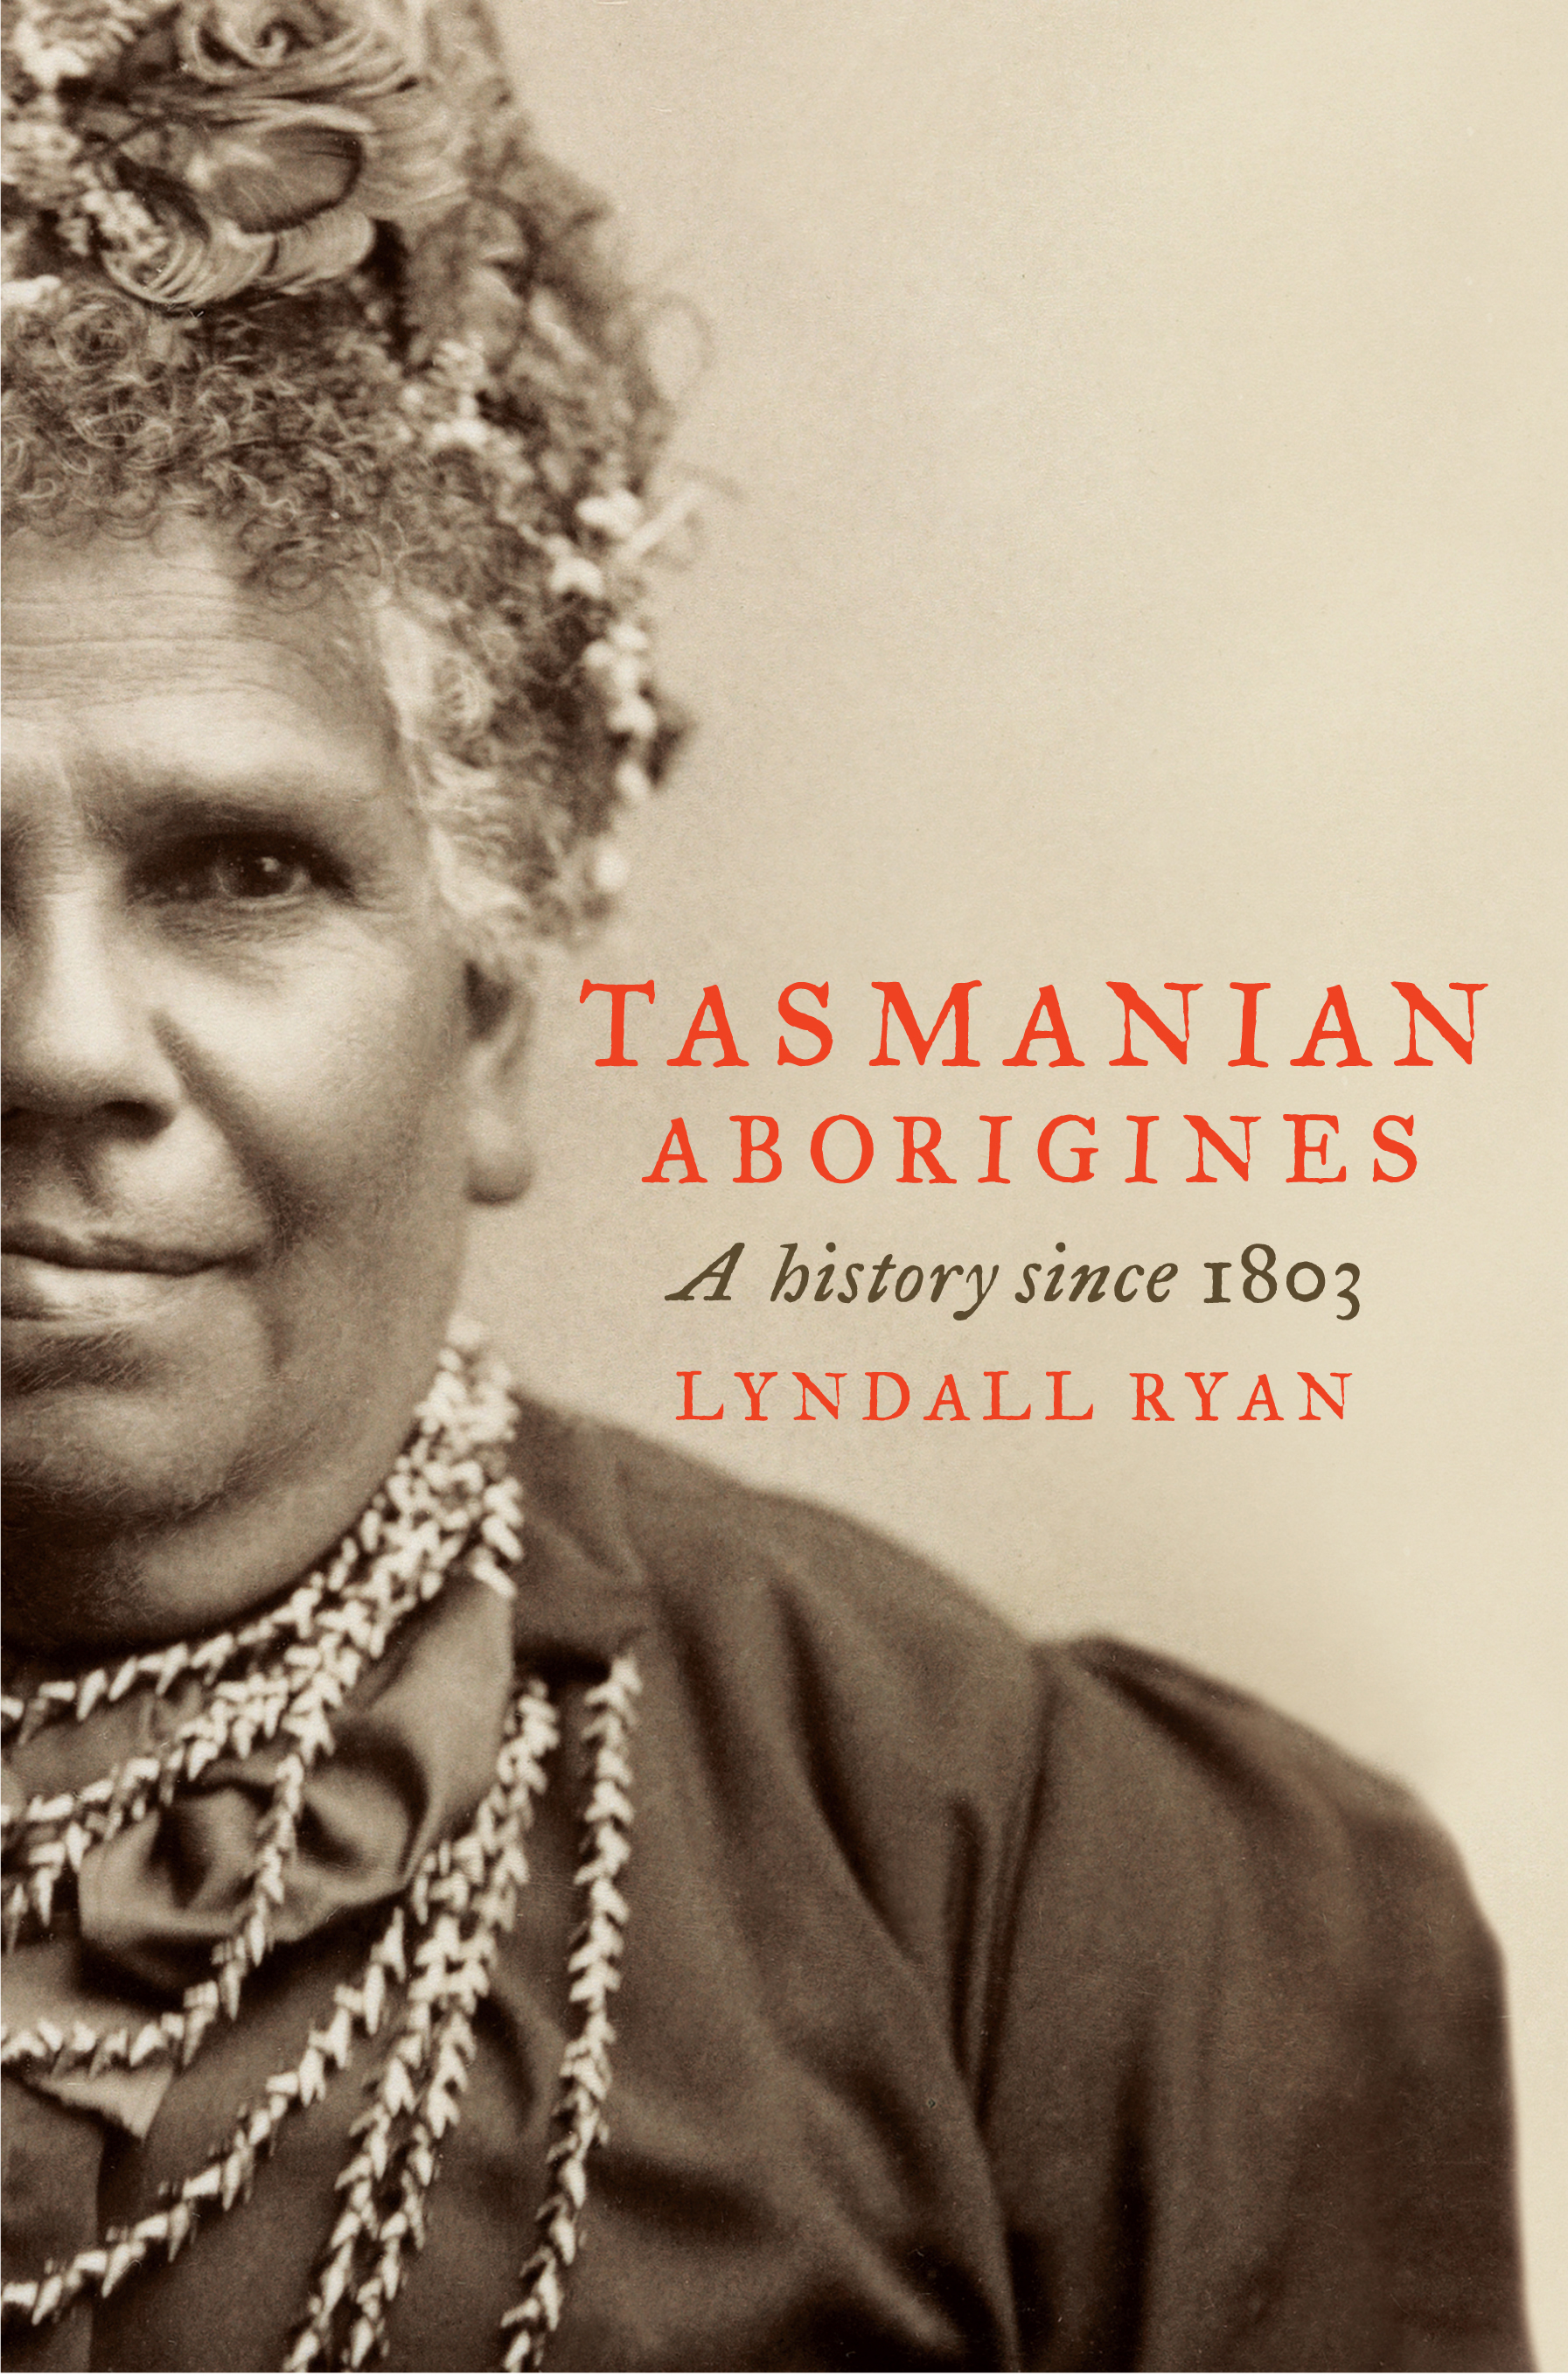 inequality to aboriginal people in australia essay Reviews current statistical data to demonstrate inequalities and to suggest the  extent of  access to new lands depended upon a policy of keeping aboriginal  peoples separate and  and aboriginal australians may also have dietary  origins.